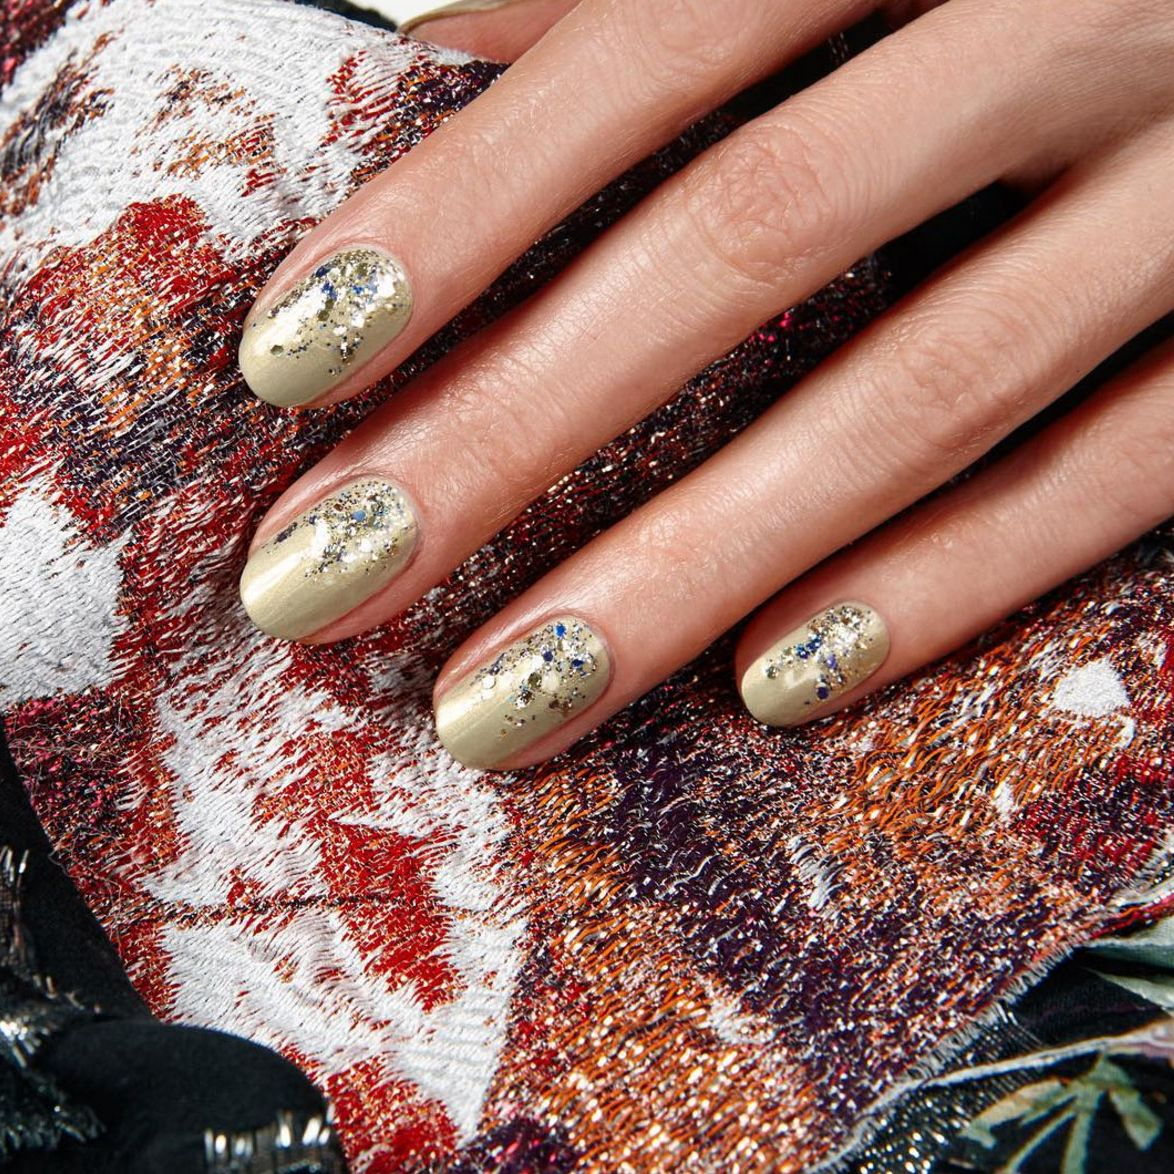 """<p>Take a gold nail look one step further by diffusing a thick glittery top coat starting at cuticle.</p><p><a href=""""https://www.instagram.com/p/BAOLB6fxL1N/?taken-by=jinsoonchoi"""" target=""""_blank"""" data-tracking-id=""""recirc-text-link"""">@jinsoonchoi</a></p>"""